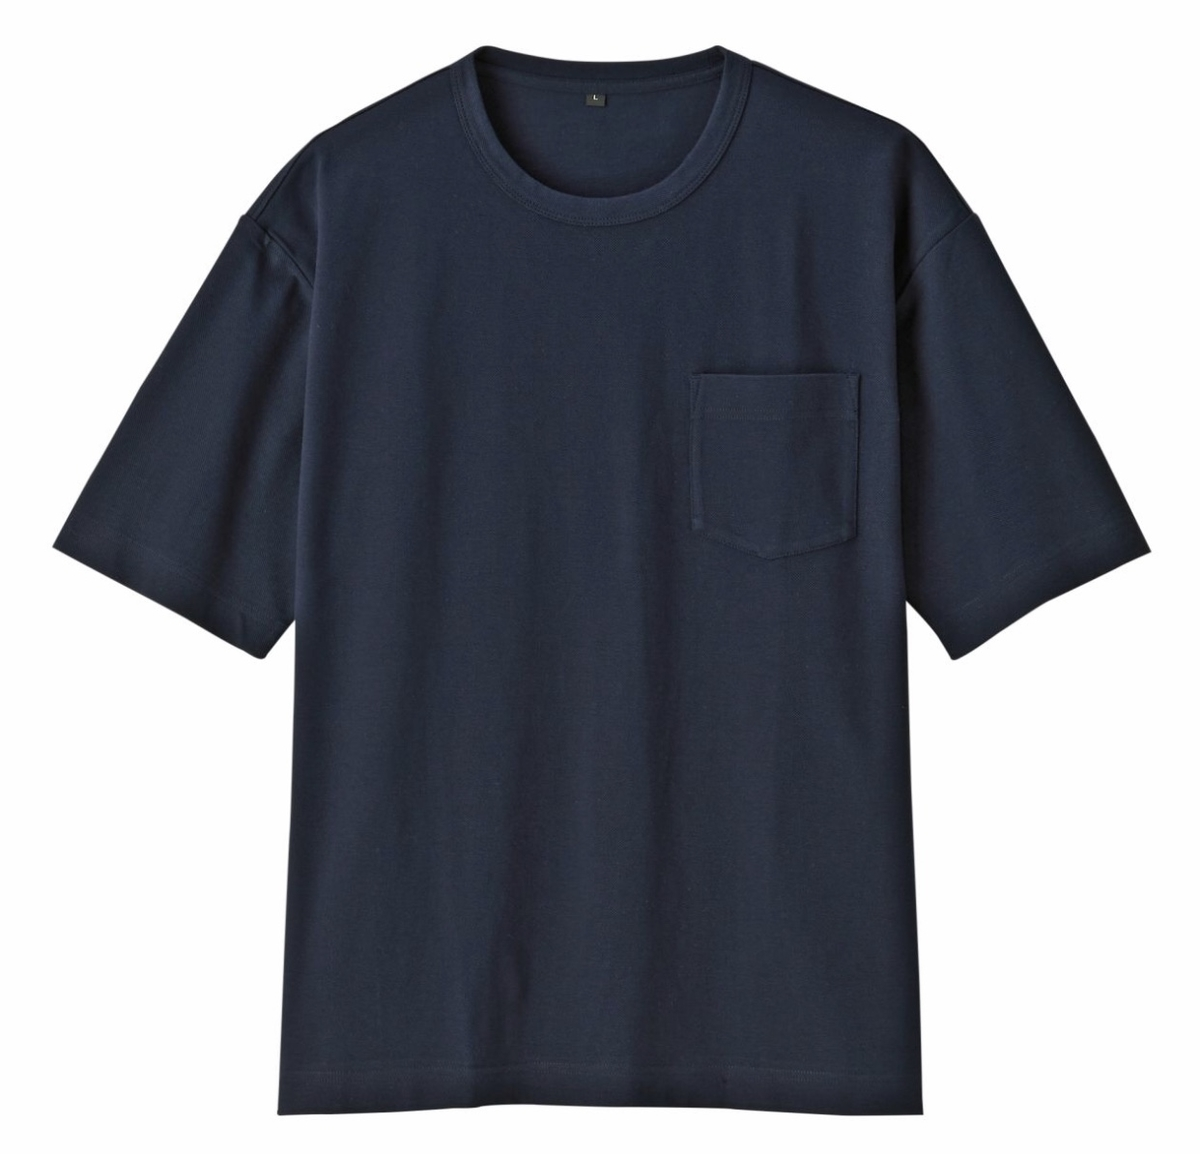 f:id:fortheshirt:20190603115653j:plain